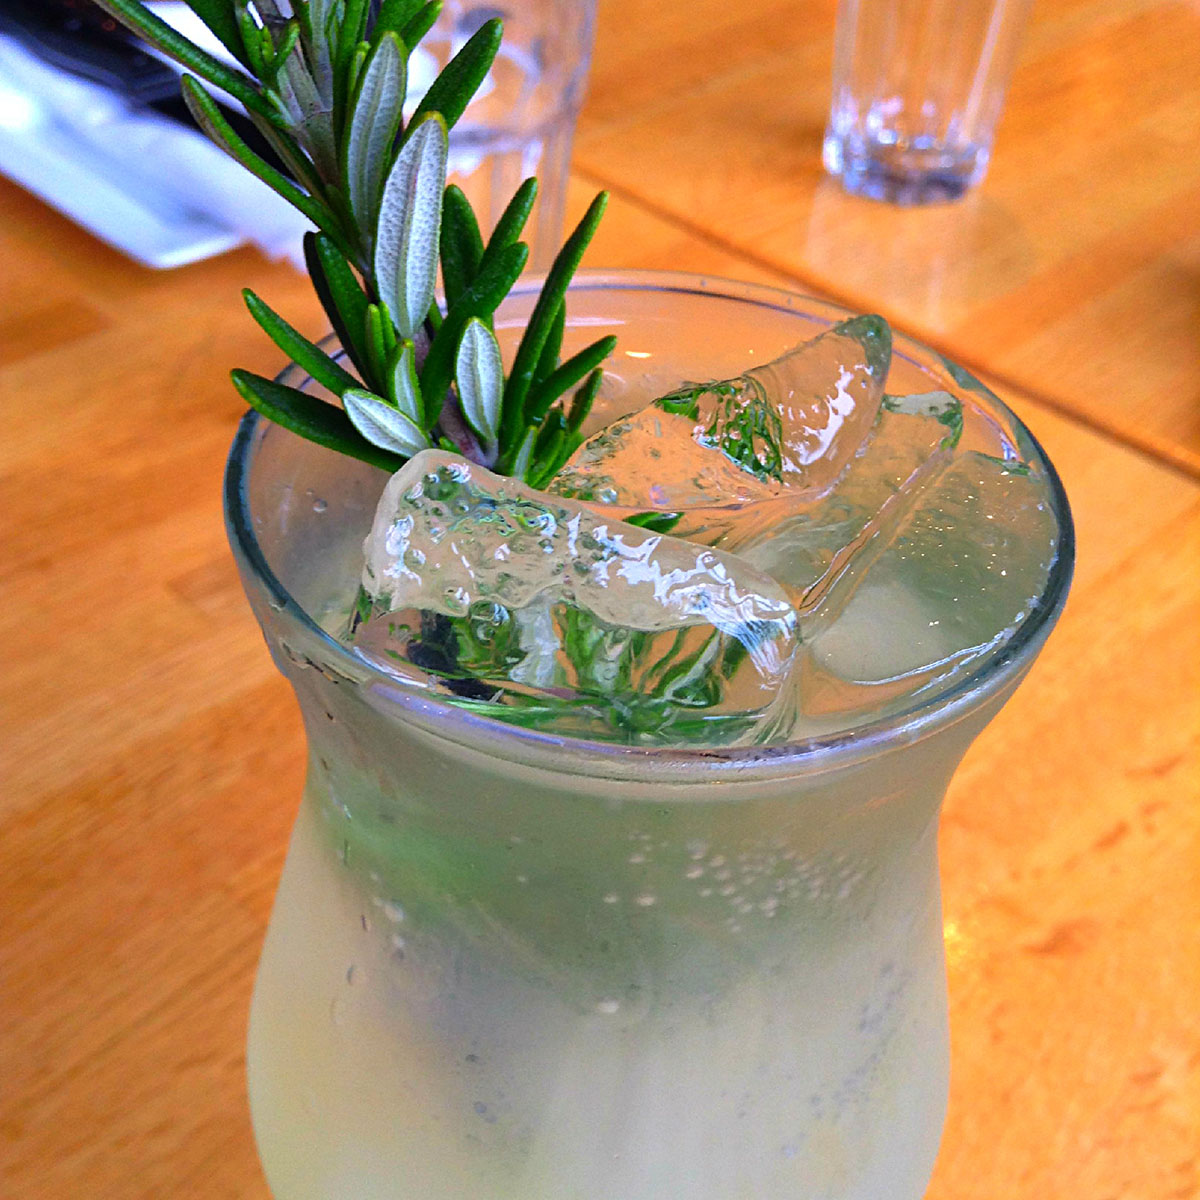 Rosemary Yuzu Limeade At The Tip Tap Room